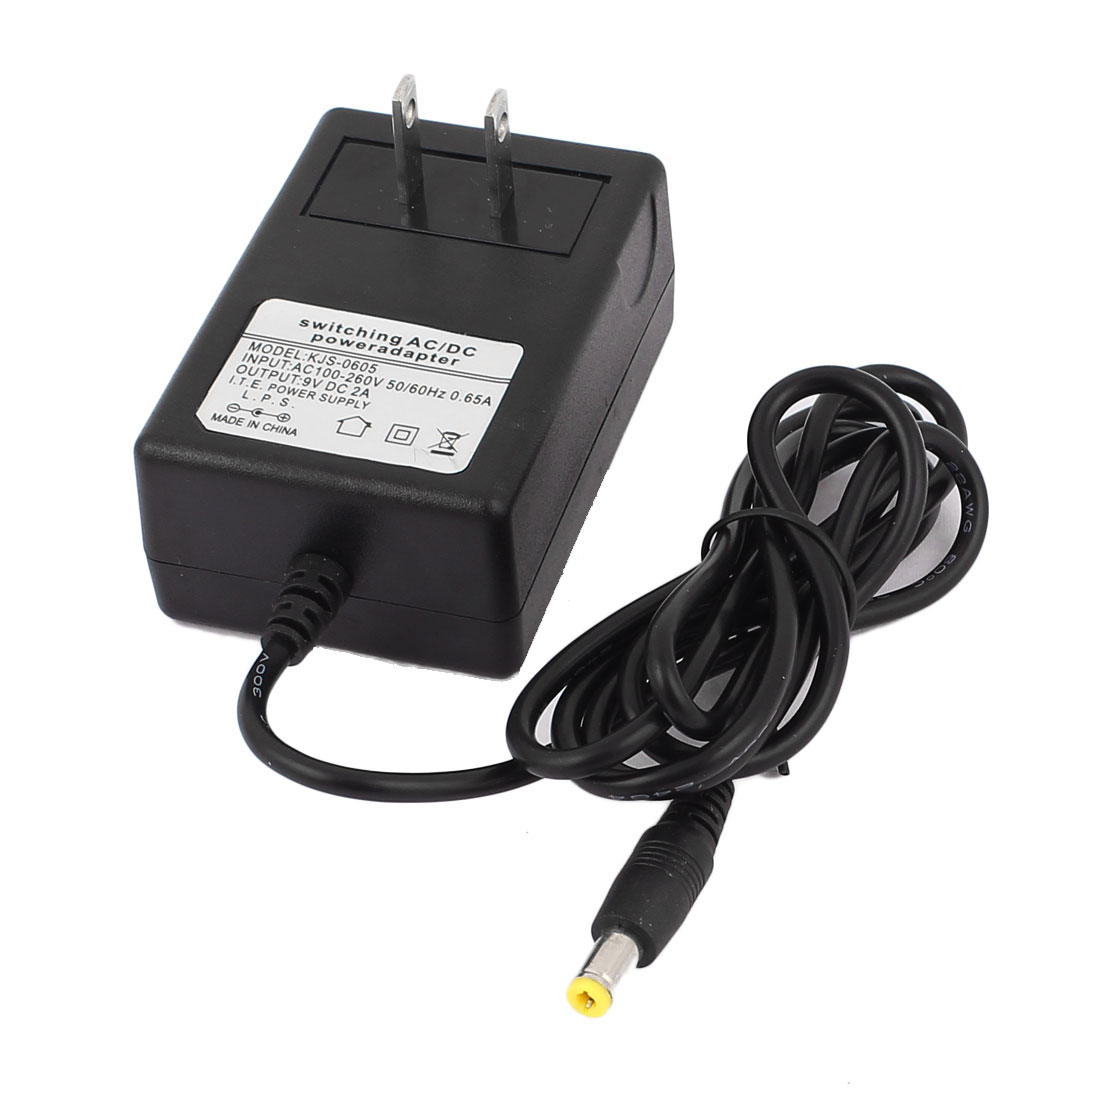 US Plug AC 100-260V to DC 9V 2A 5.5 x 2.1mm Power Supply Adapter Charger